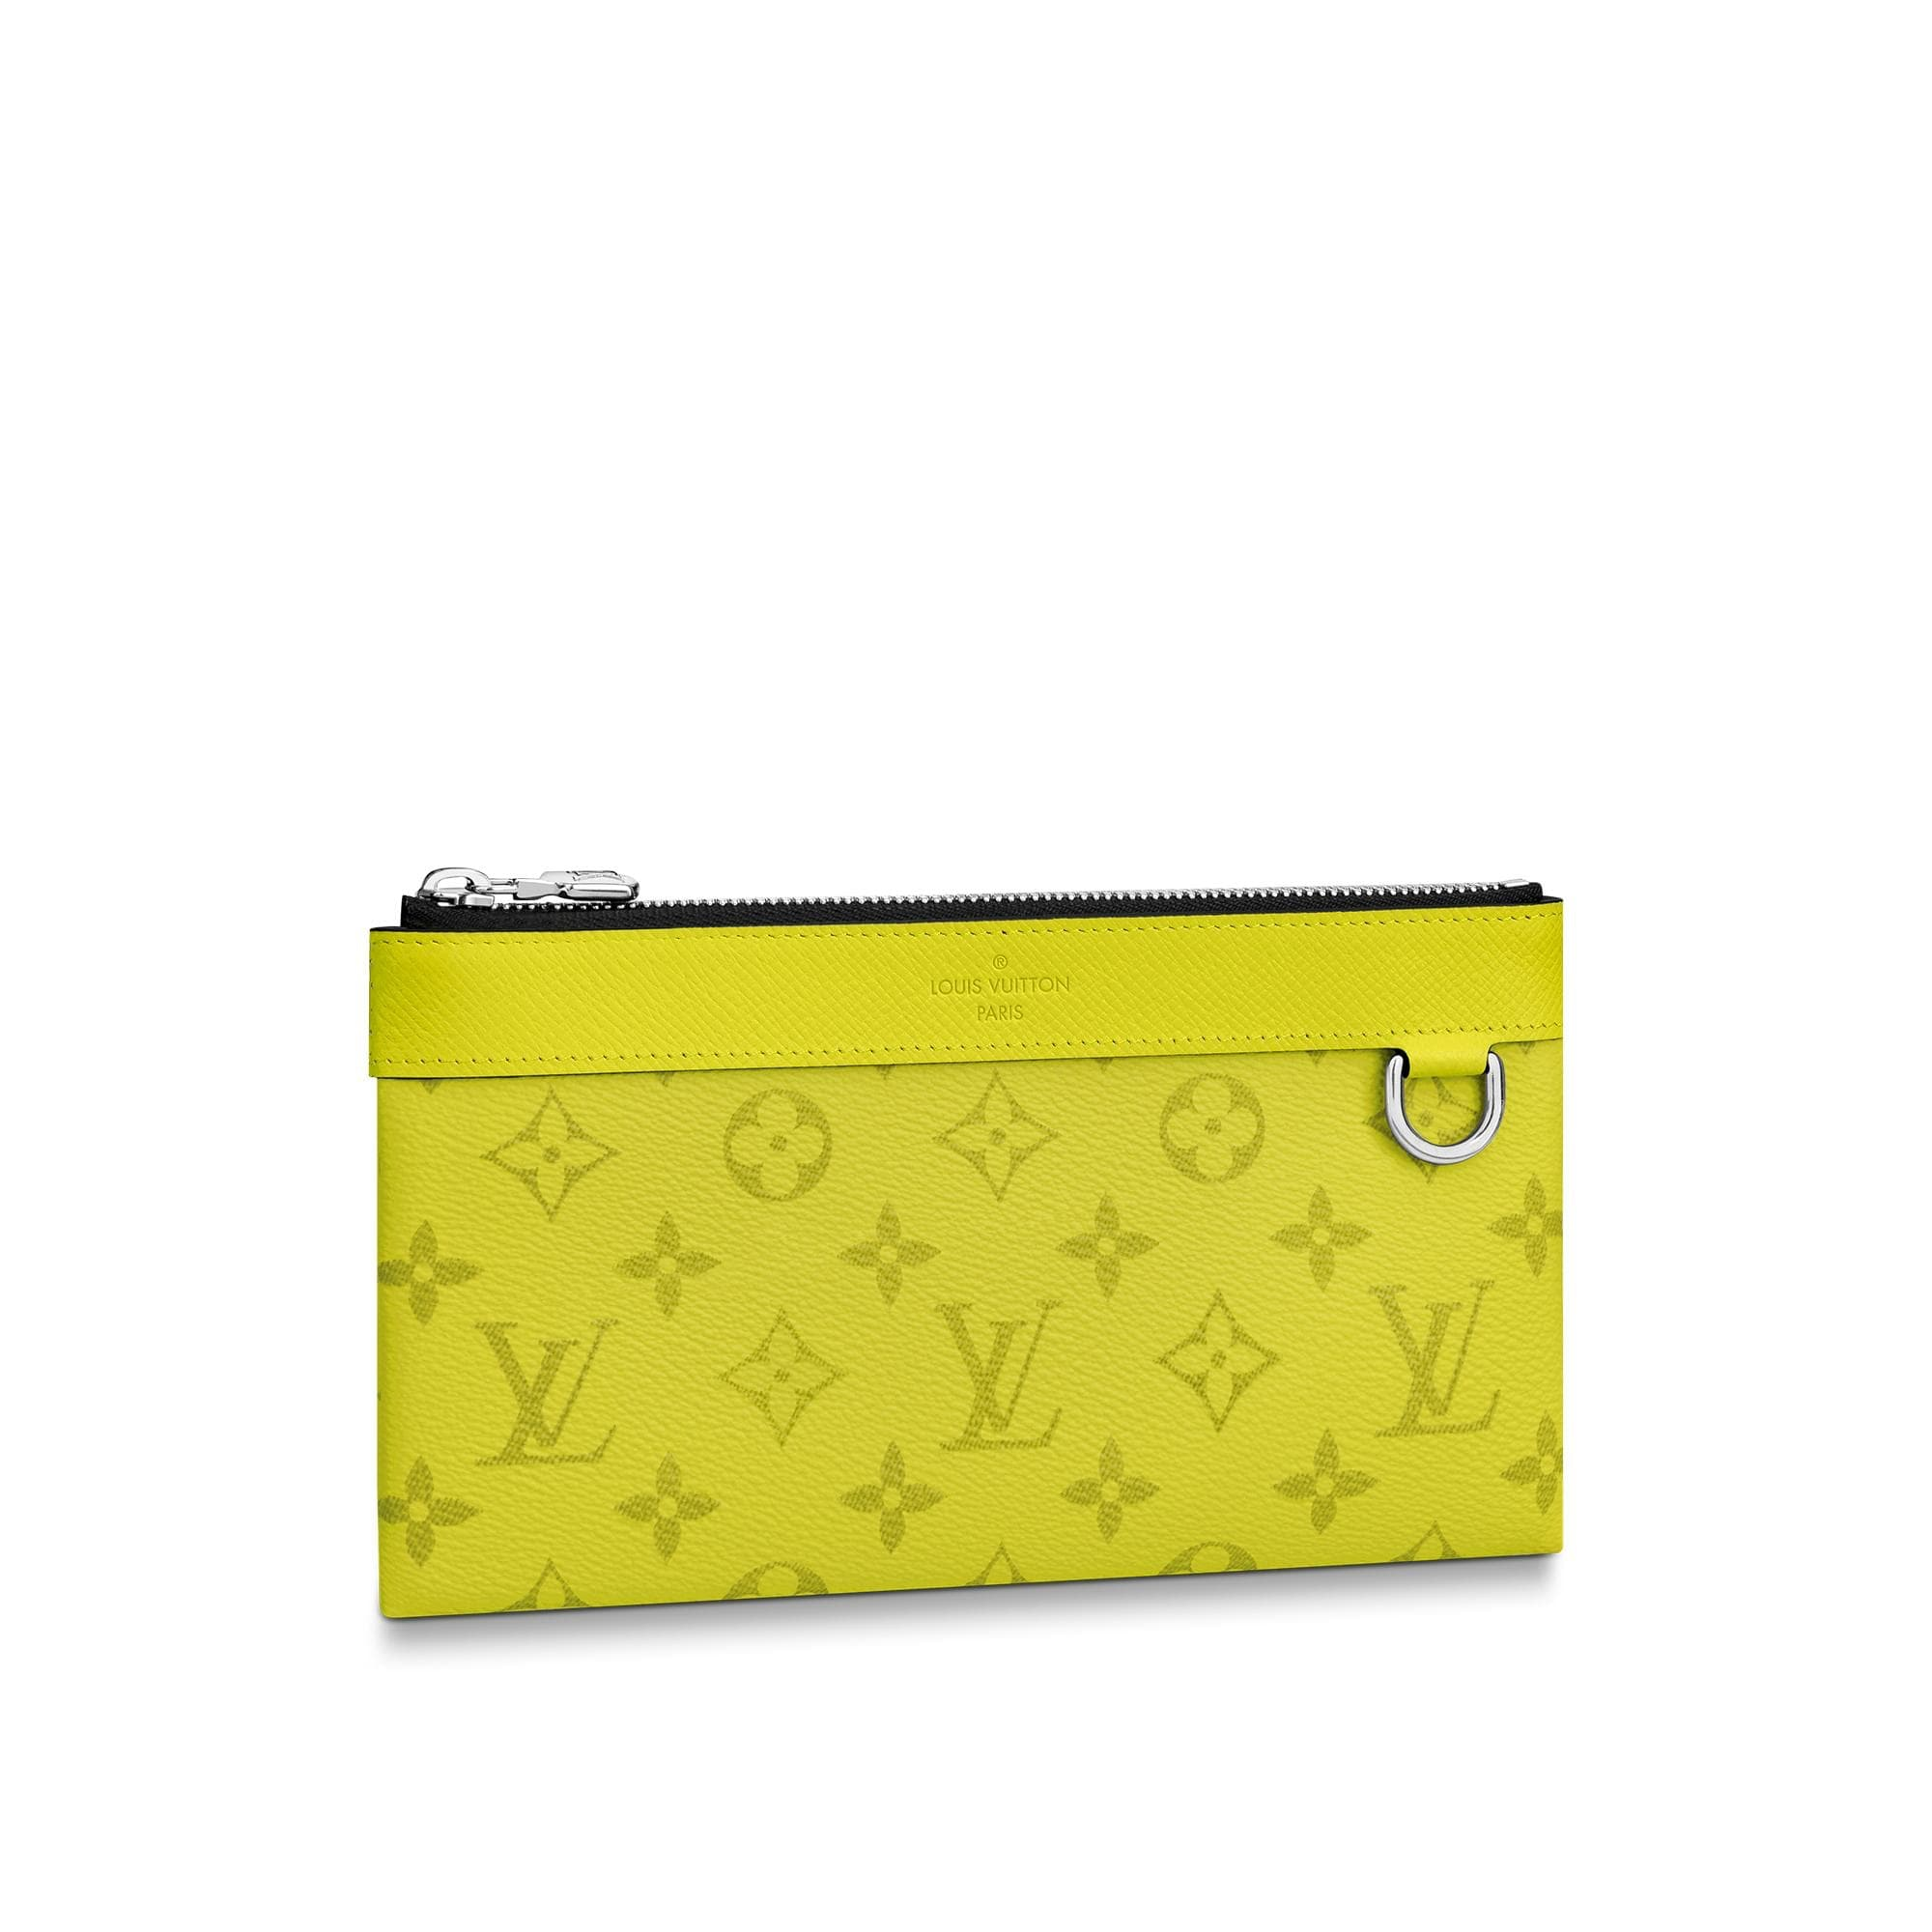 Louis Vuitton Discovery Pochette Monogram Bahia Taiga PM Yellow